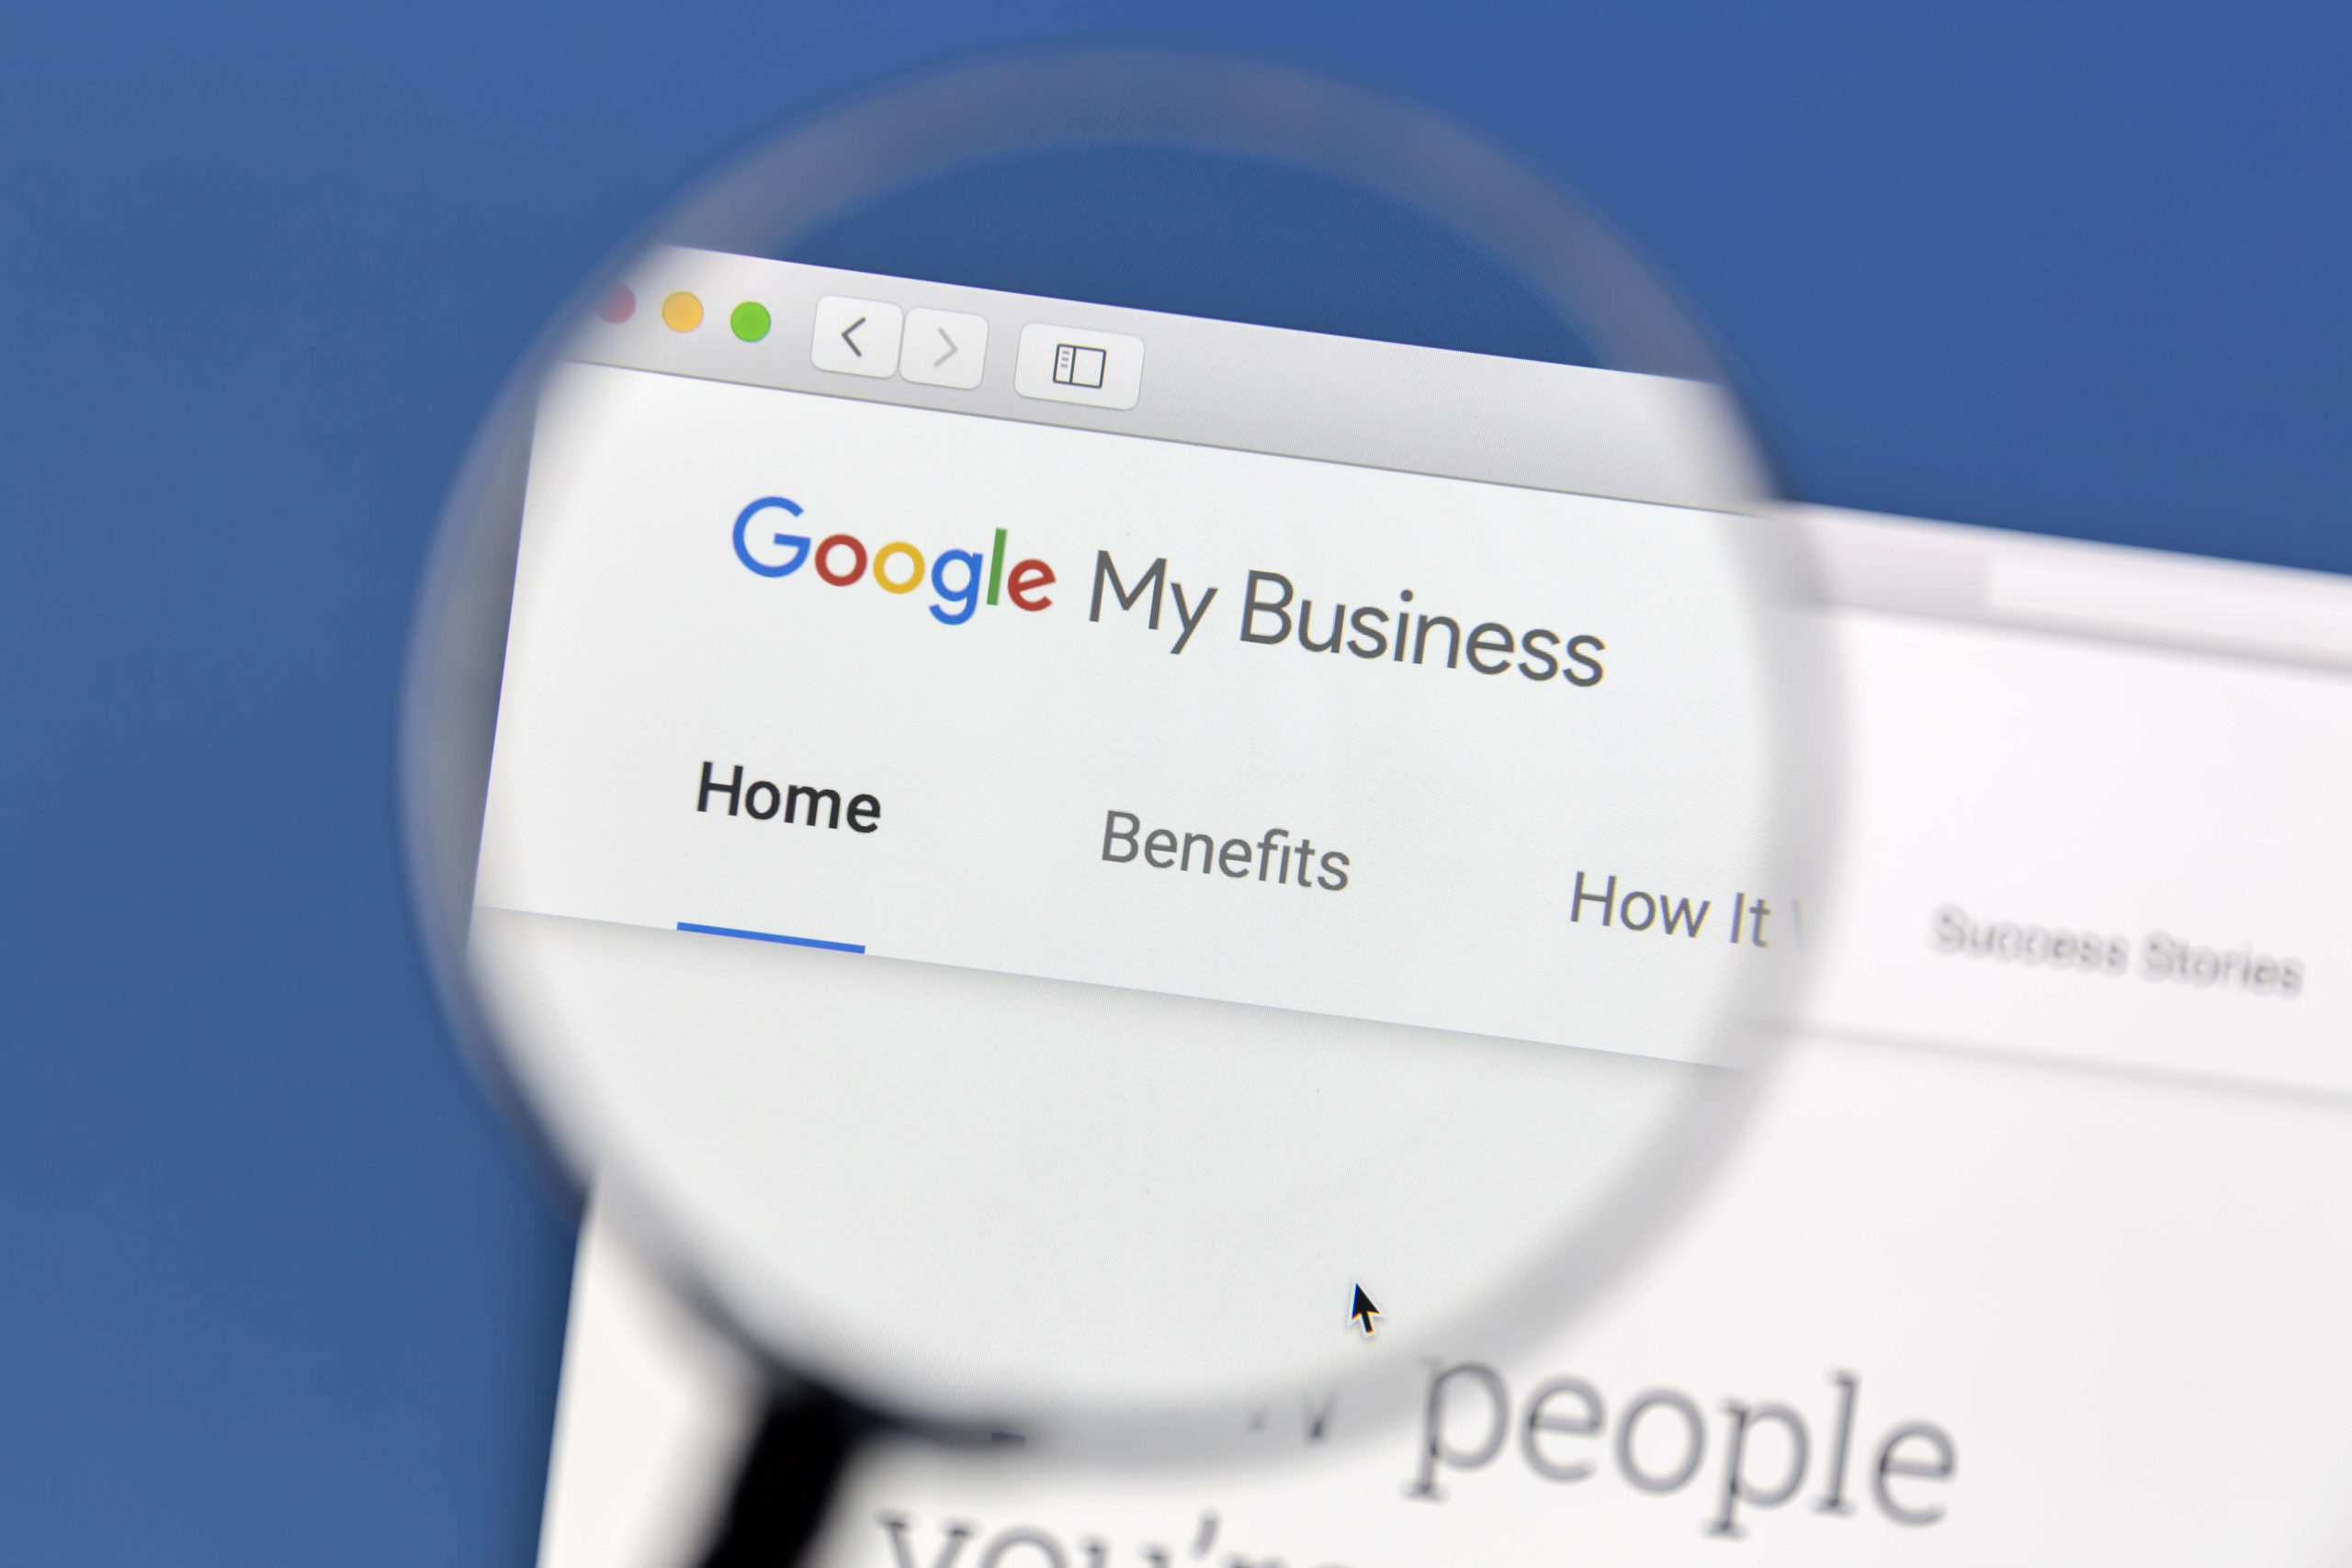 Is Your Google My Business Profile Working for Your Business?